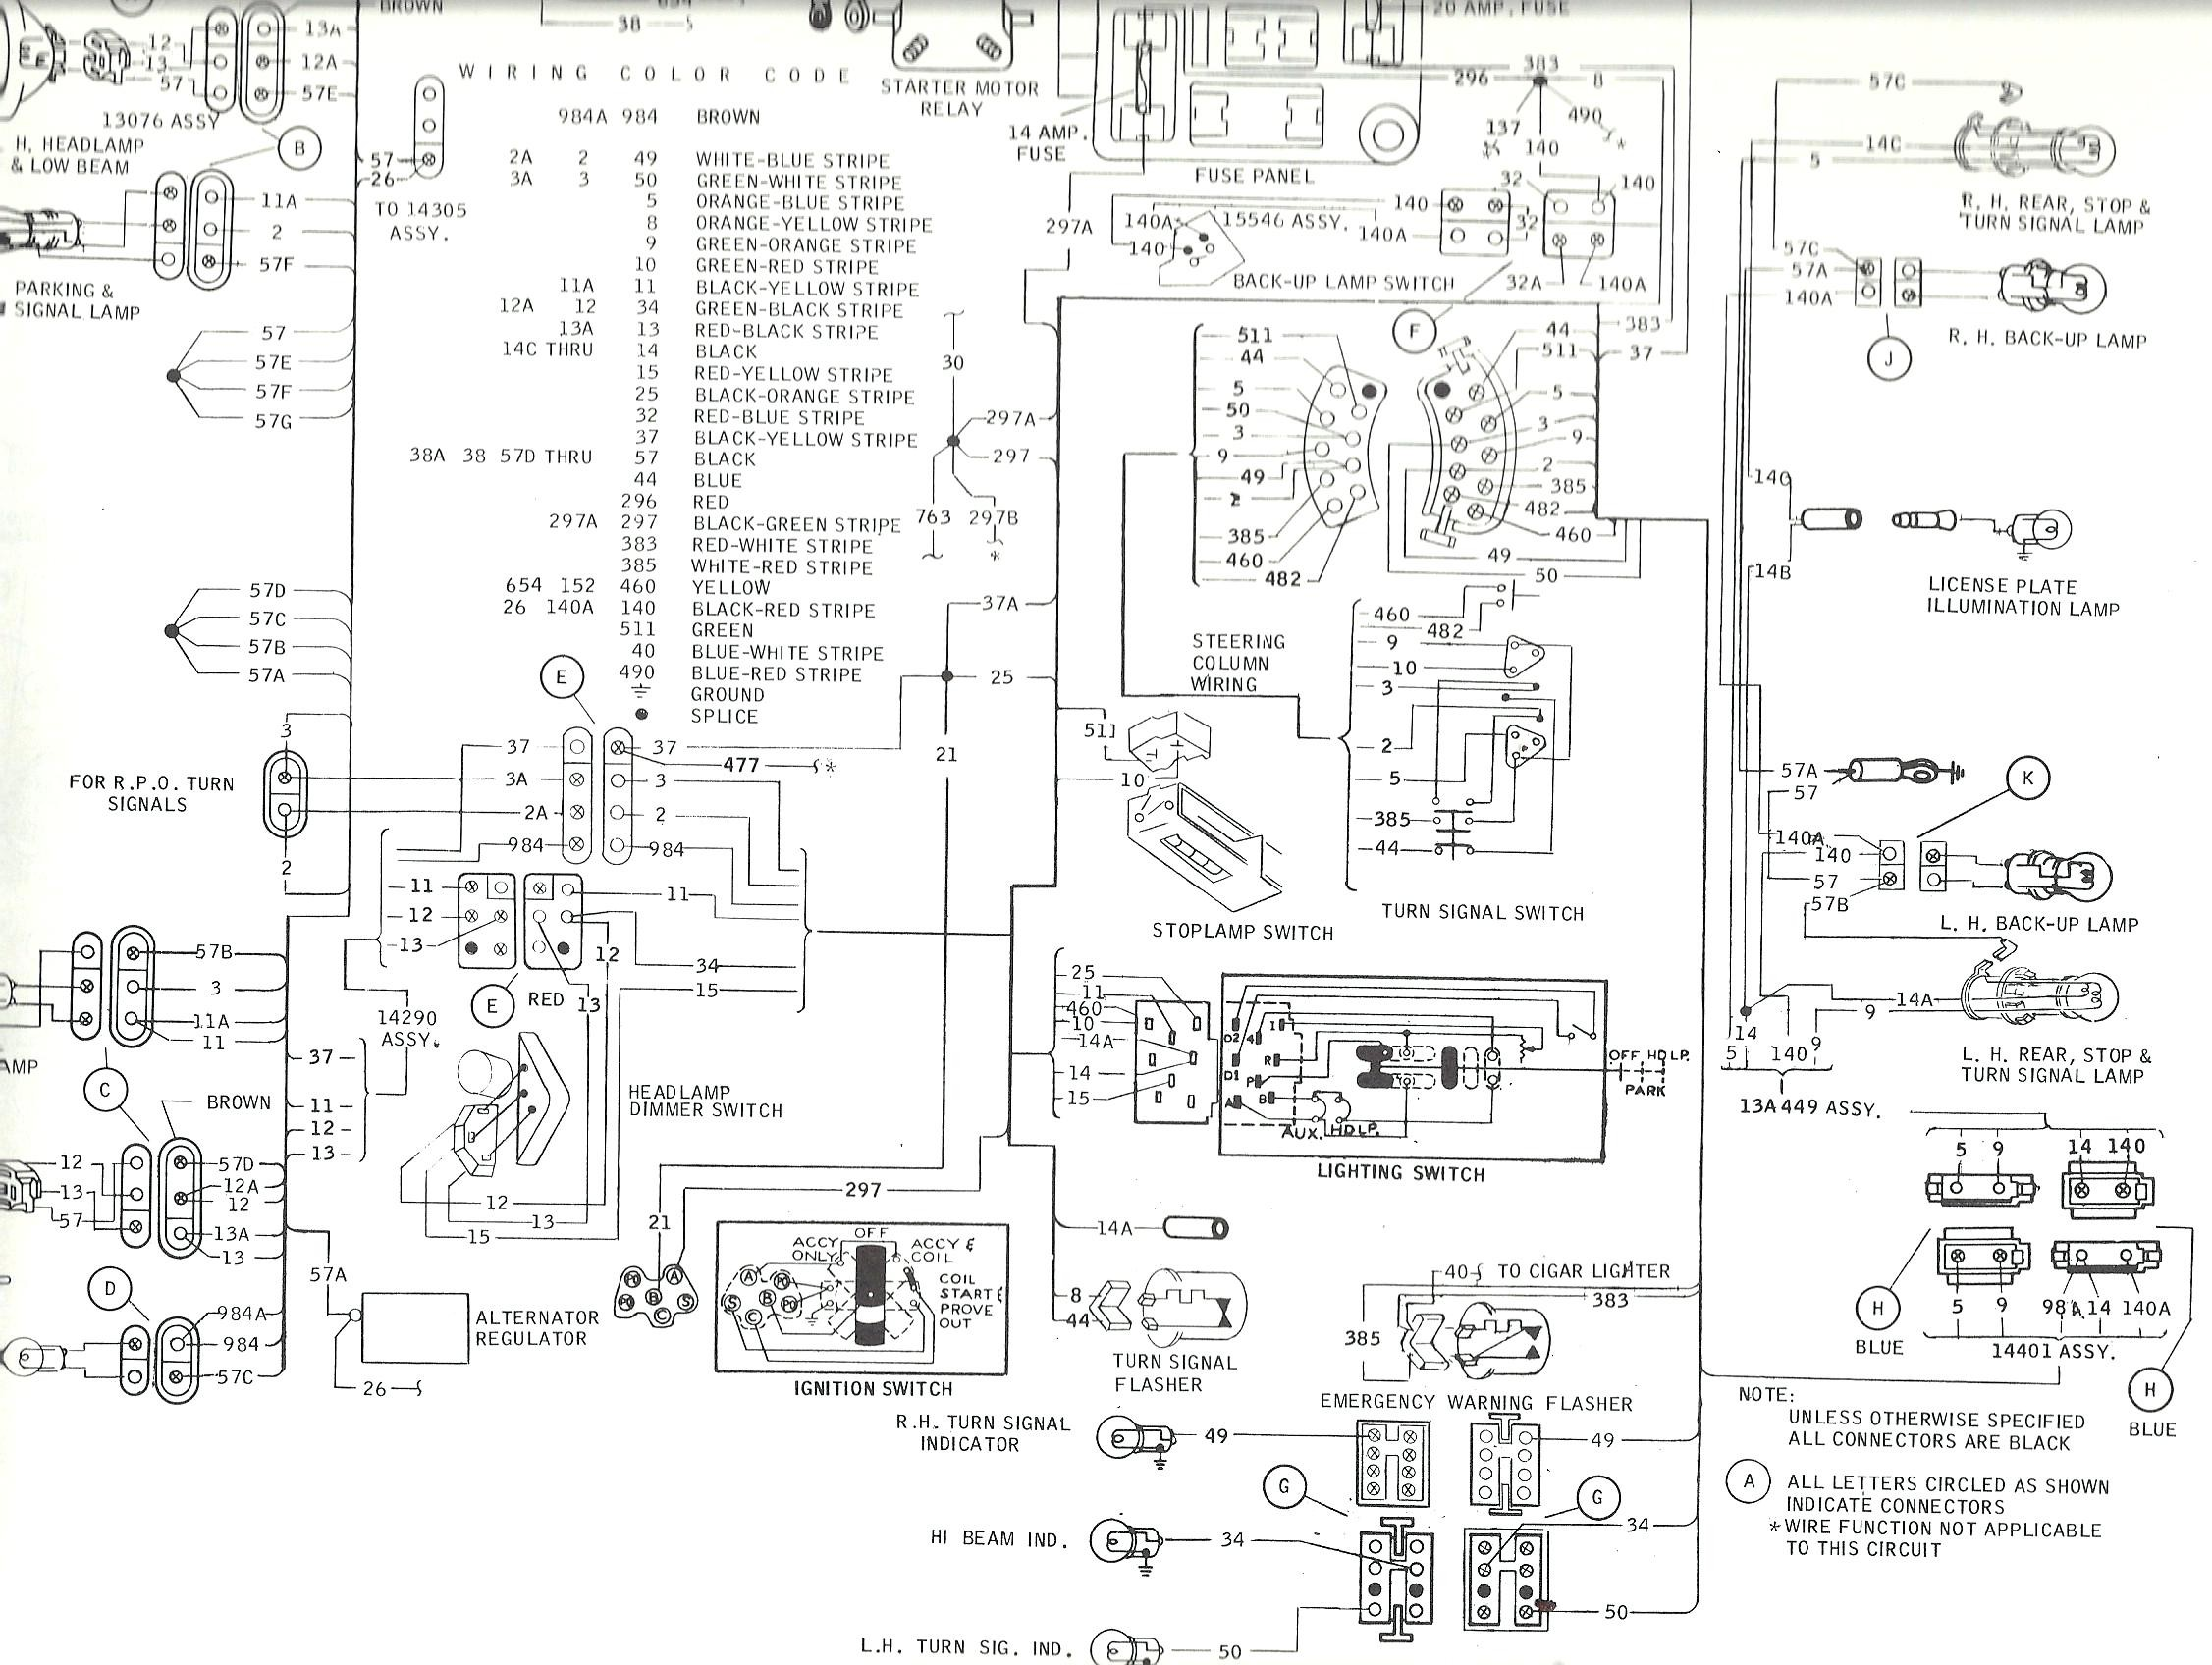 1968 Mustang Wiring Diagram Mustang Turn Signal Switch Wiring Diagram 1968 Fuse S the Of 1968 Mustang Wiring Diagram